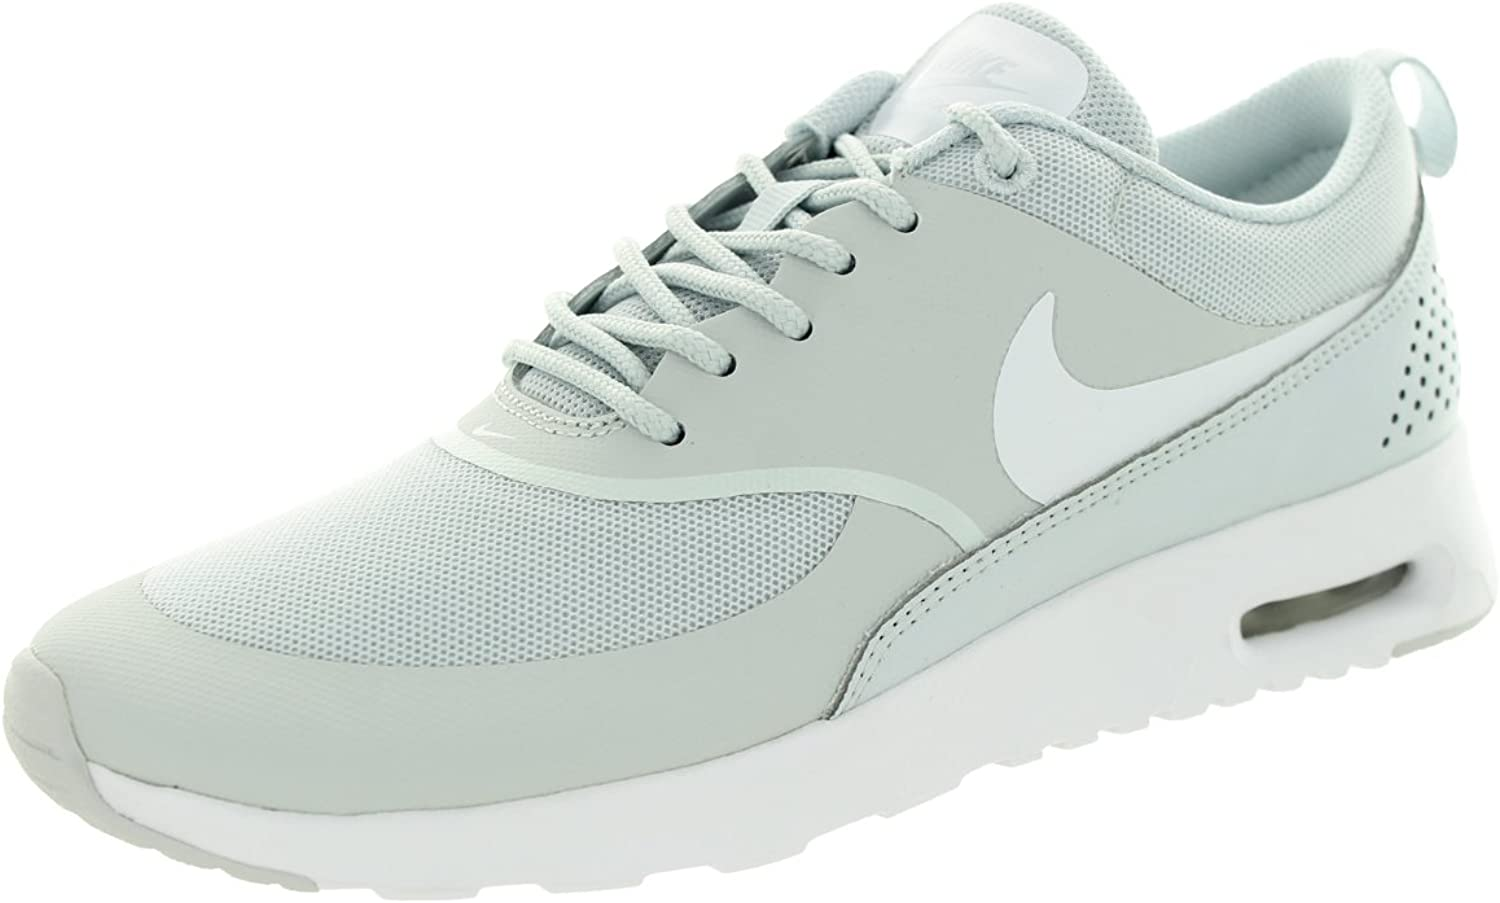 Nike Womens Air Max Thea Running Walking Athletic shoes